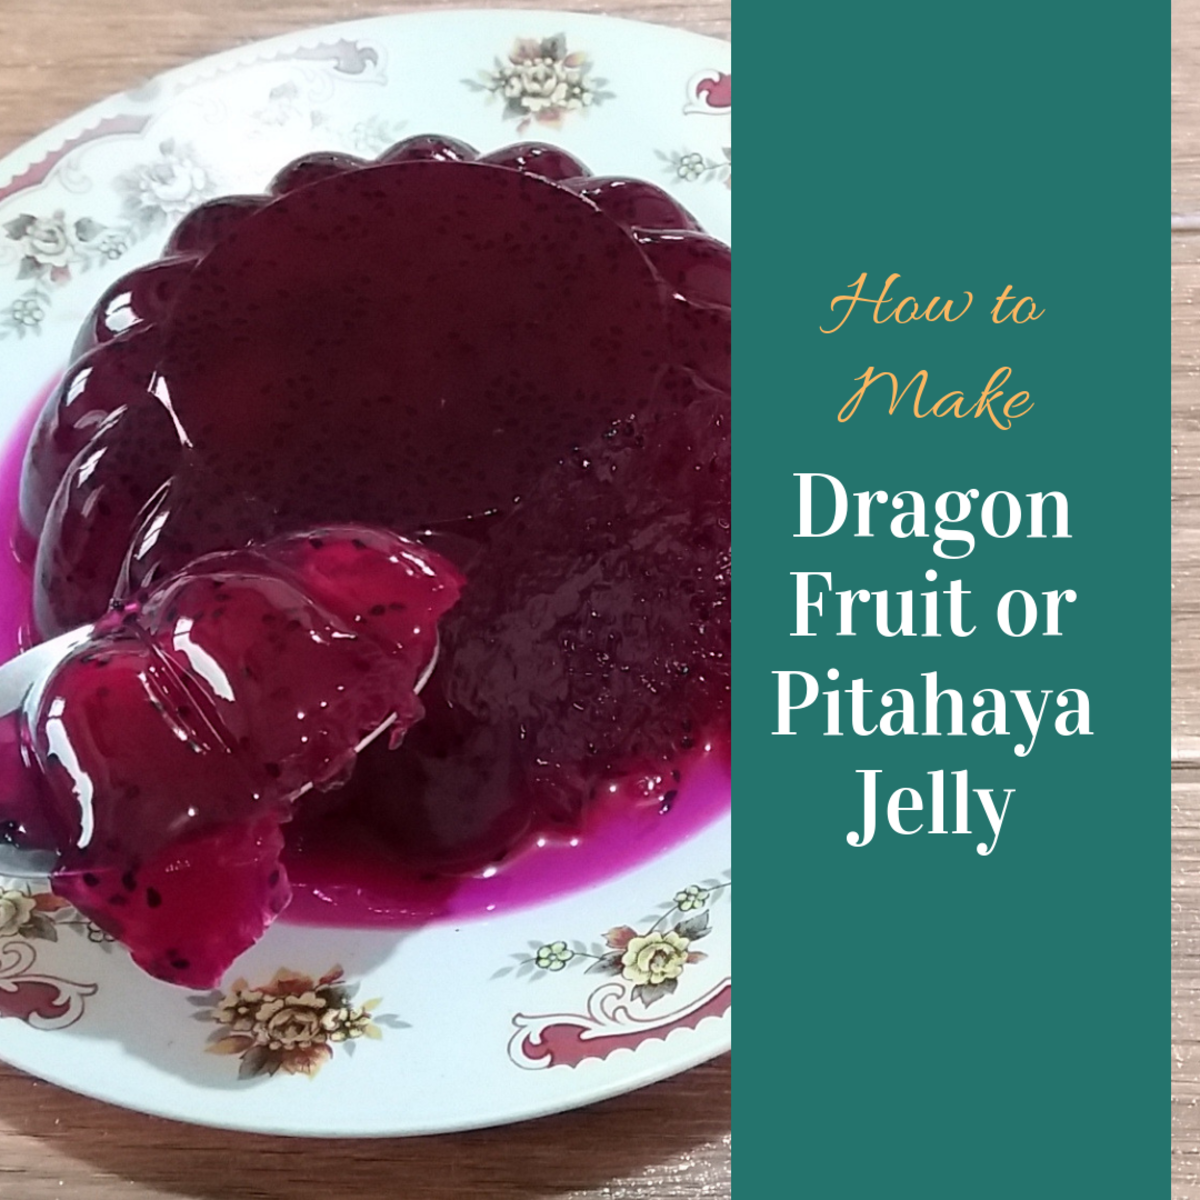 How to Make Dragon Fruit (Pitahaya) Jelly